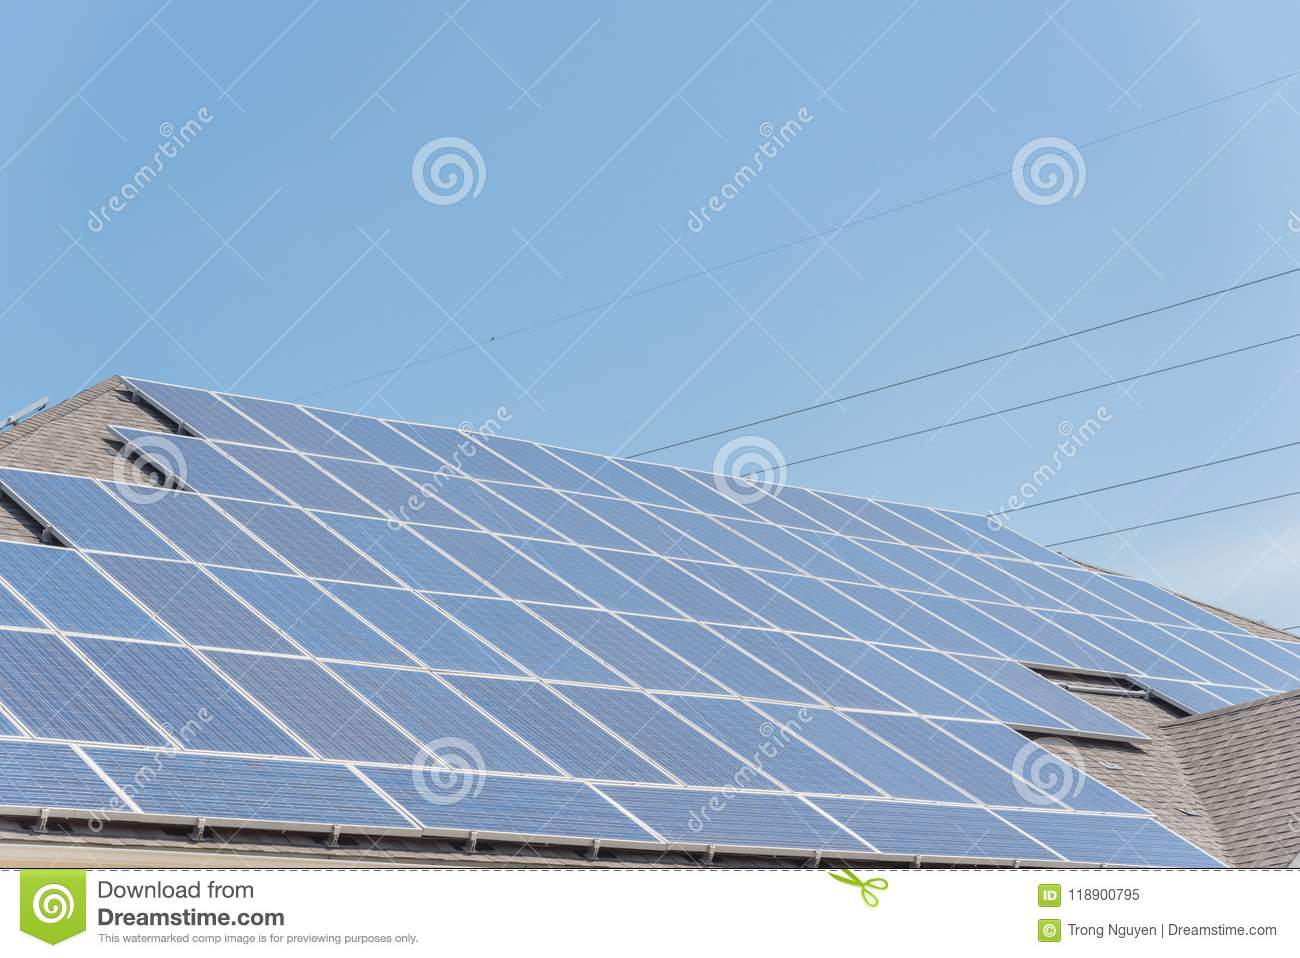 Solar Panel Installation On Asphalt Shingles Rooftop Stock Image Wiring Close Up System And Electrical Wires Rail Less Racking Battery Storage At Grapevine Texas Usa Blue Sky